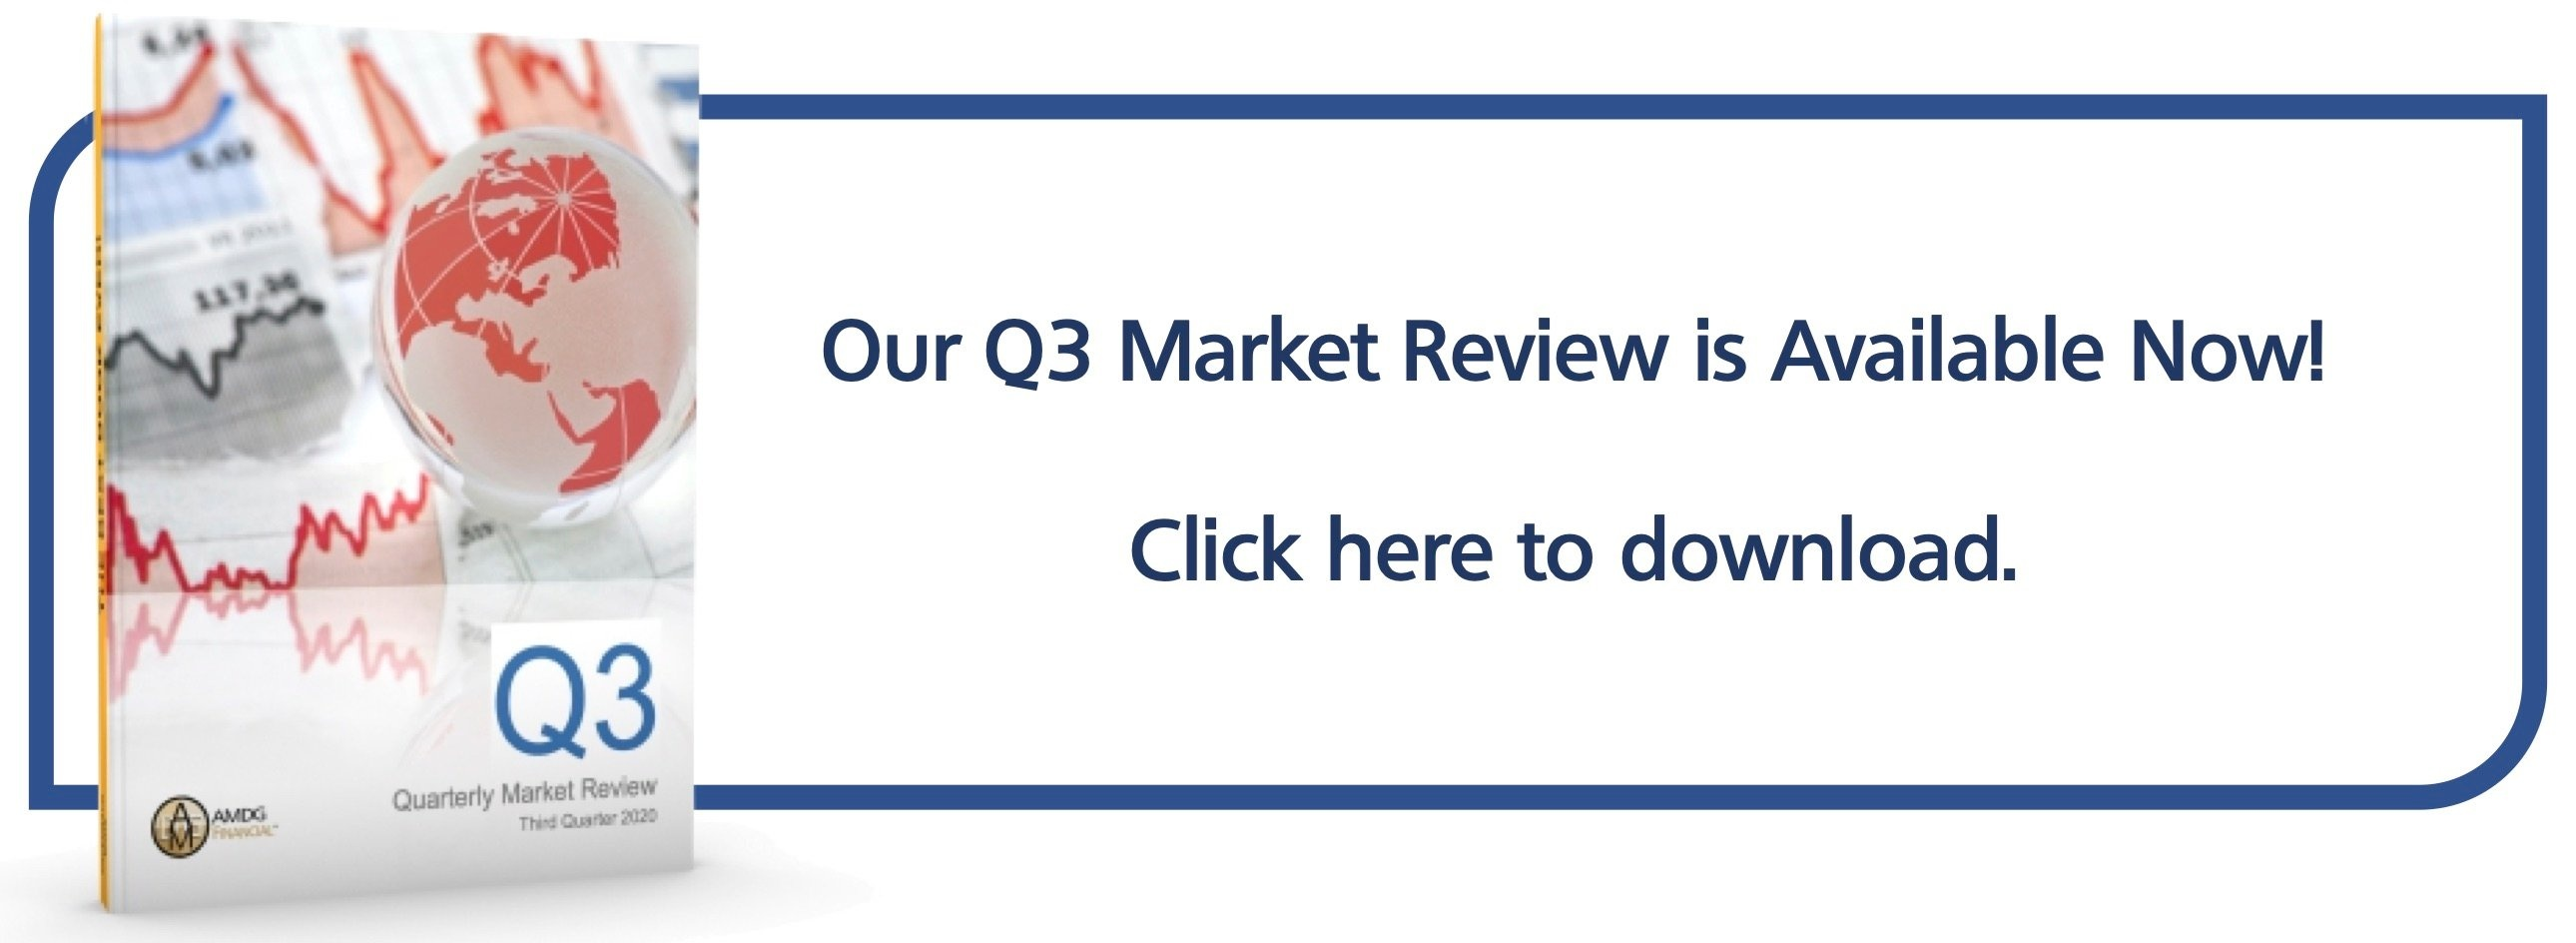 Q3 Market Review